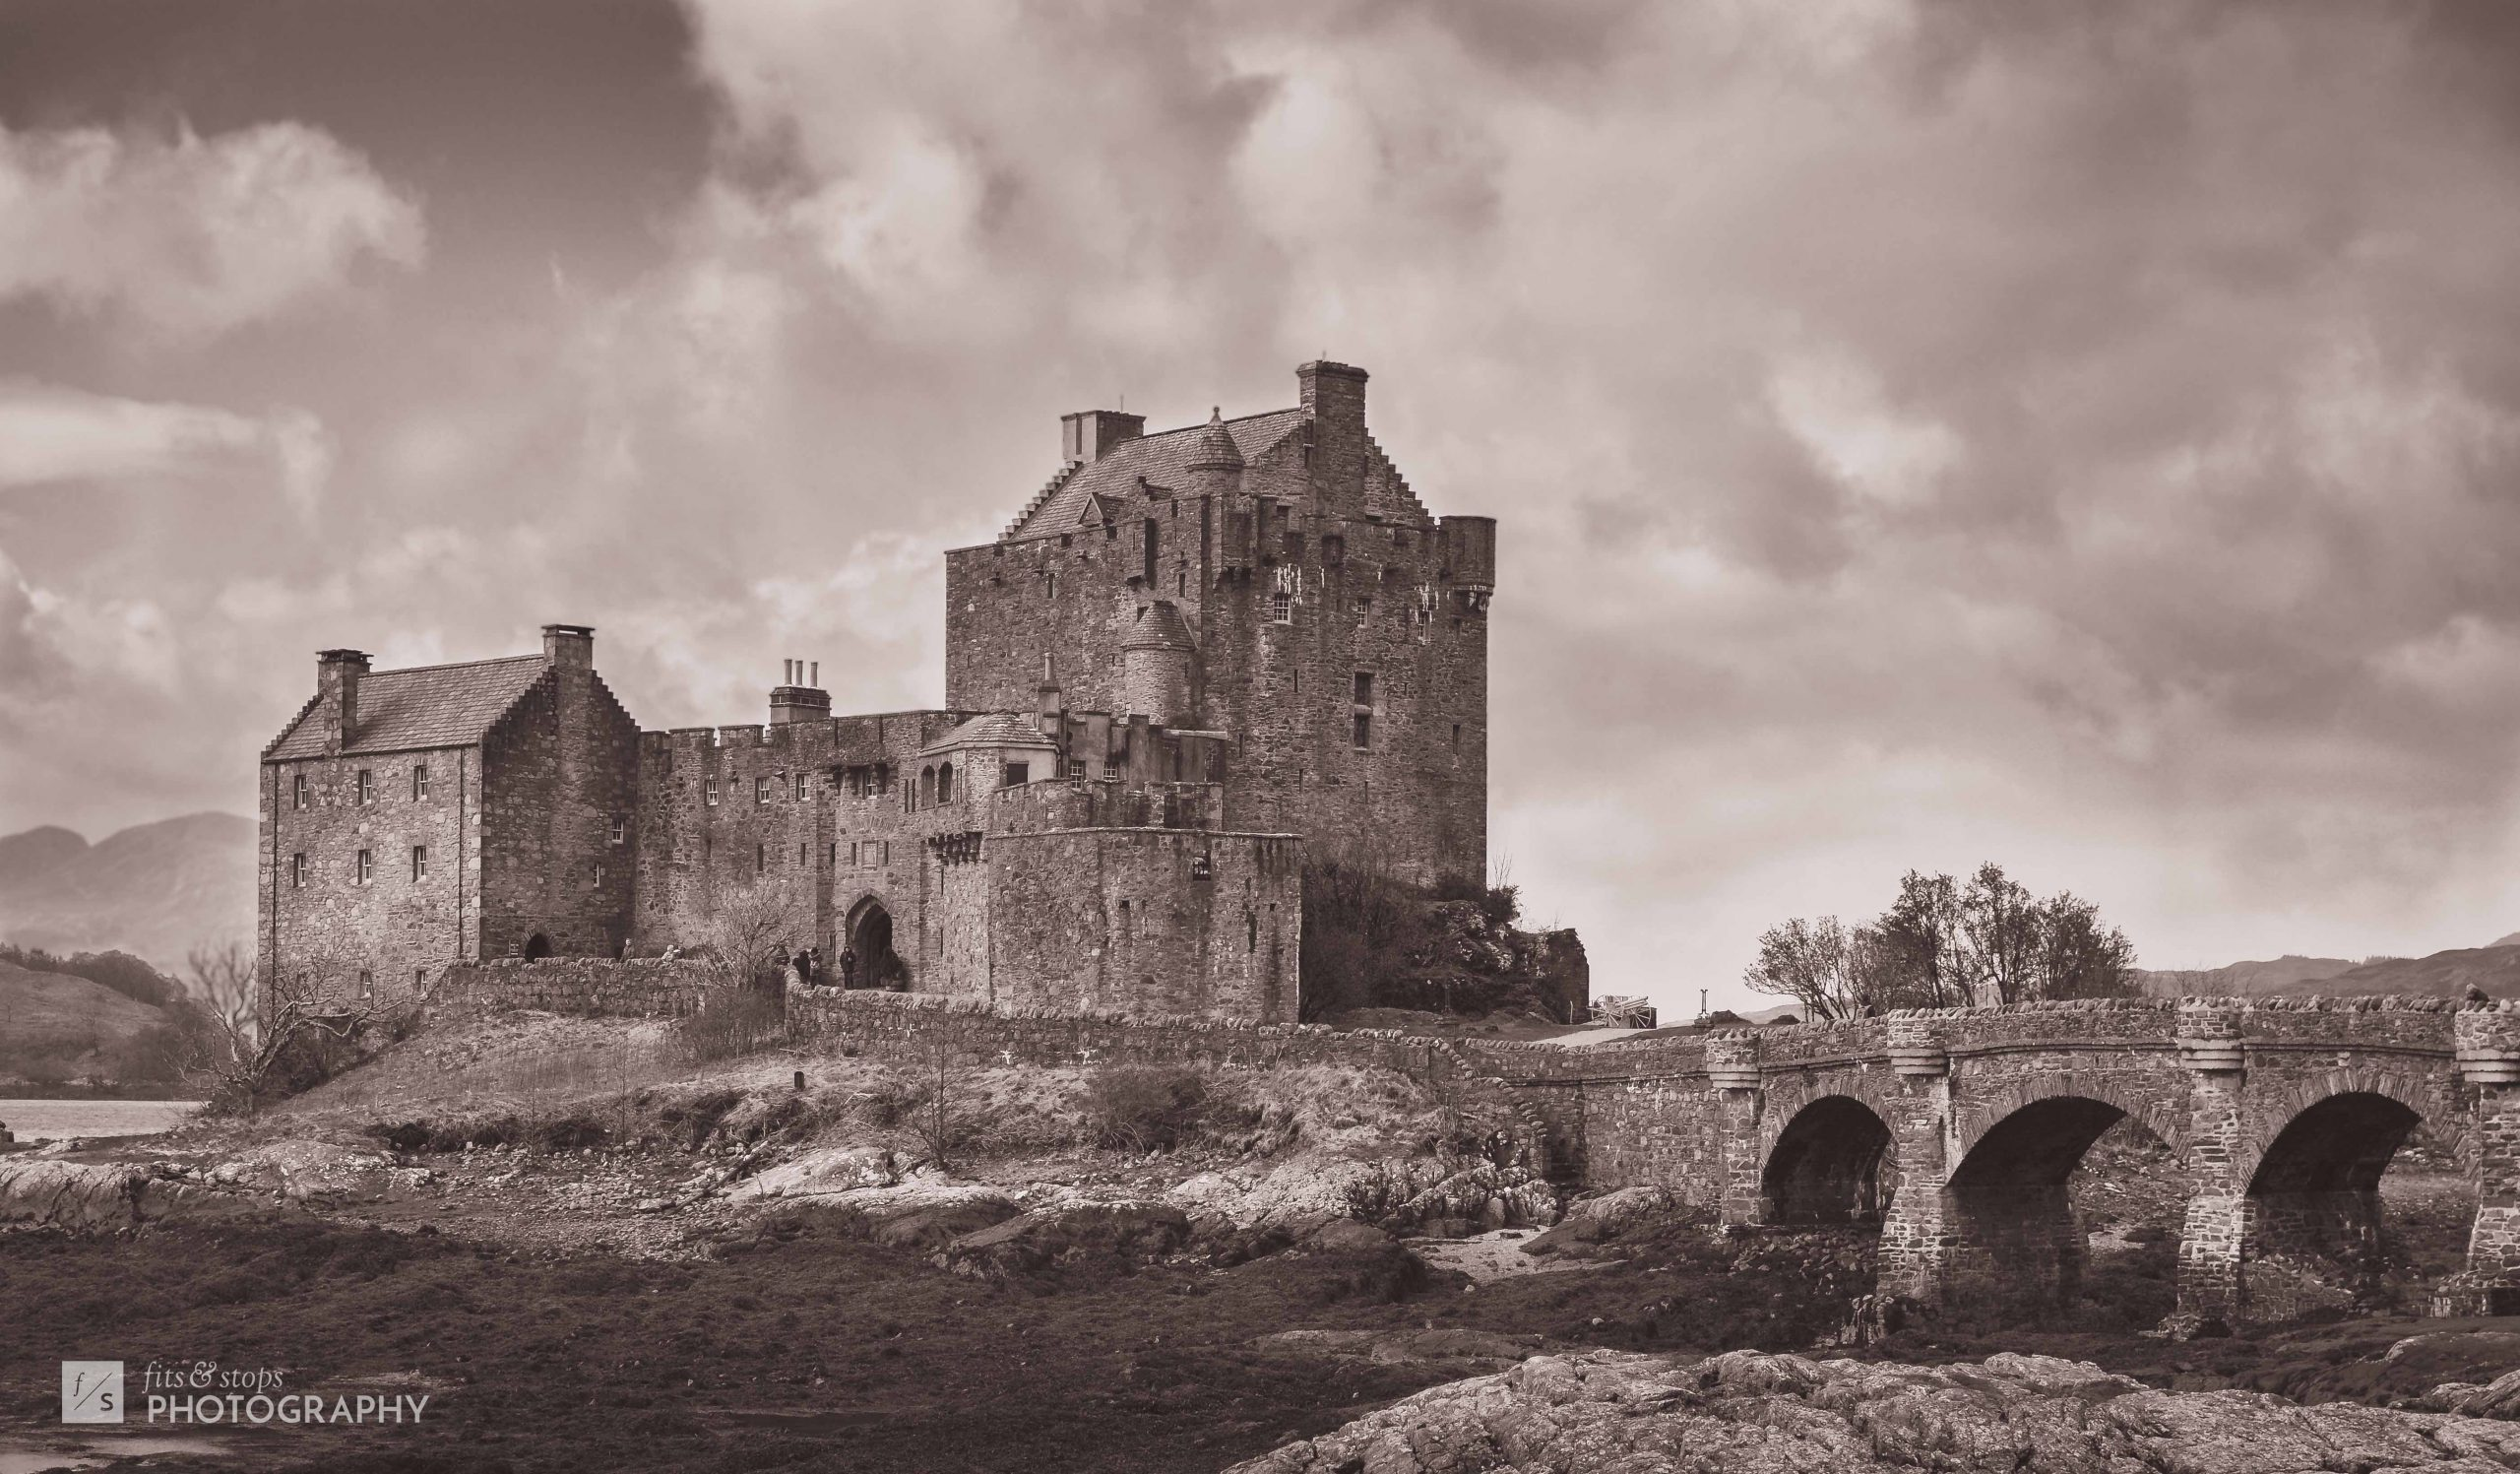 A moody, sepia-toned landscape photograph of Eilean Donan Castle, seated at the crossing of Loch Duich, Loch Alsh and Loch Long.